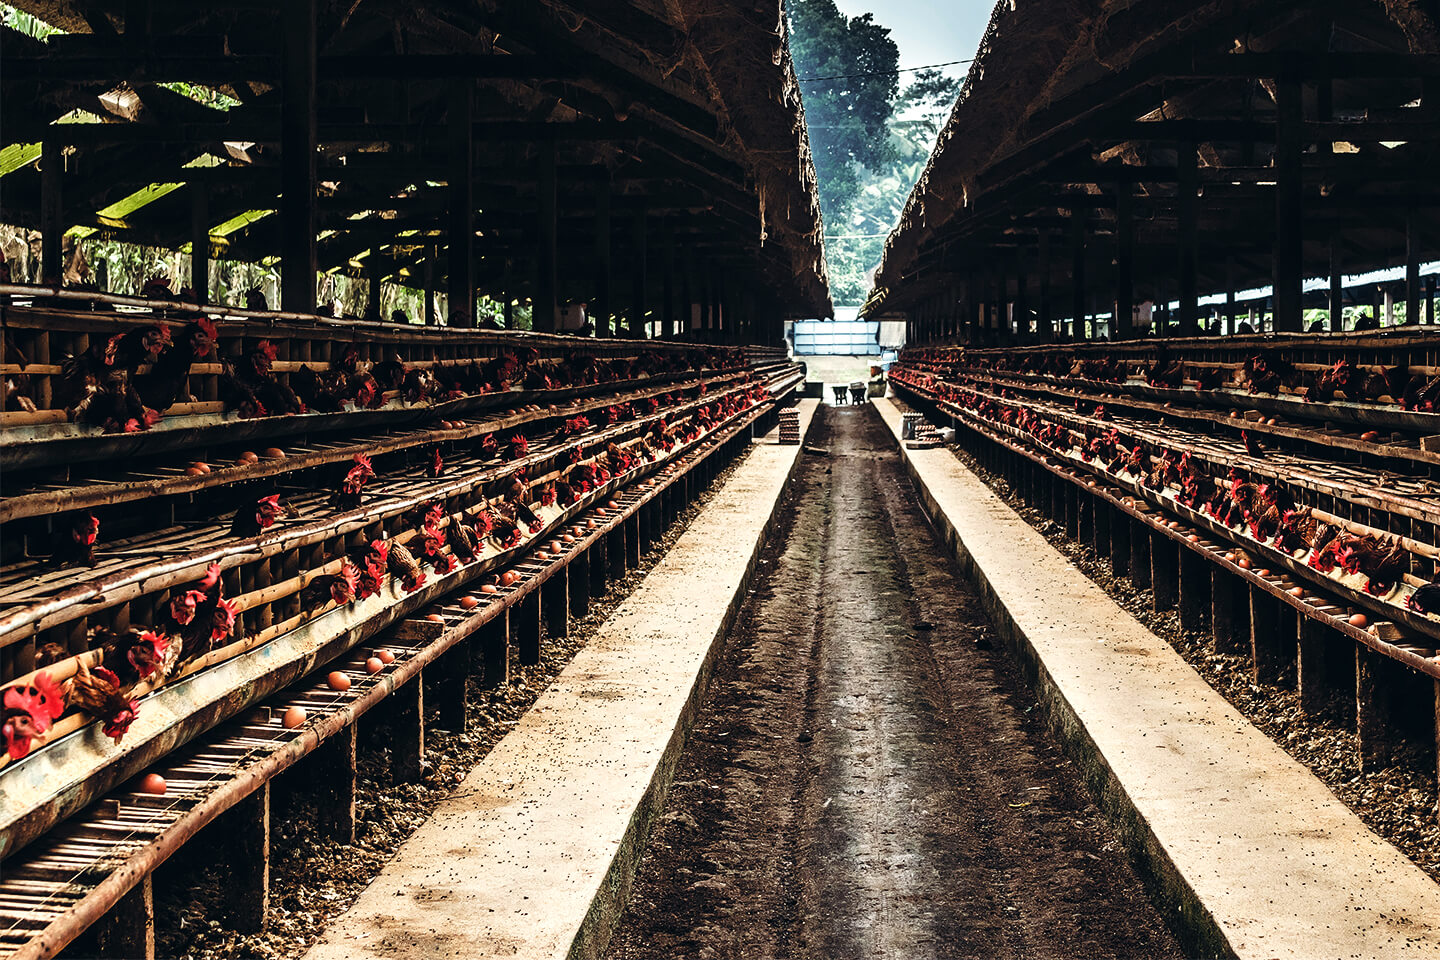 Chickens in Supply Chain